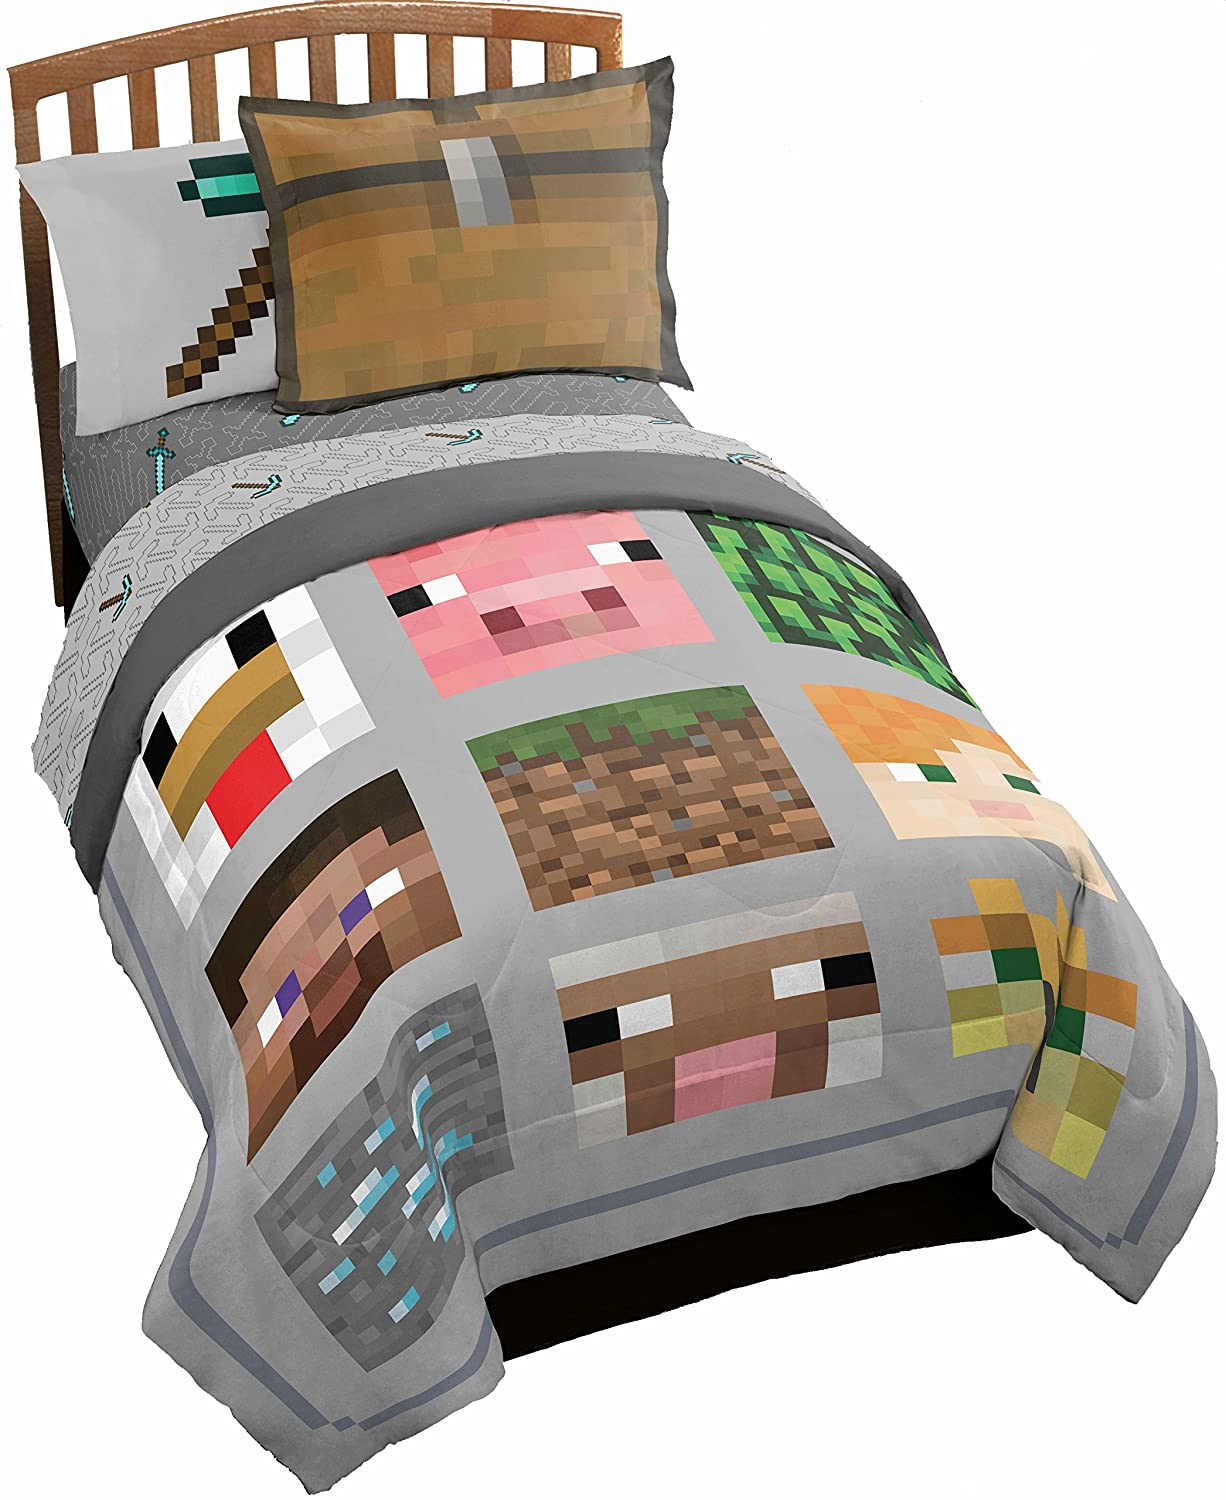 Jay Franco Minecraft Twin Quilt & Sham 2 Piece Set